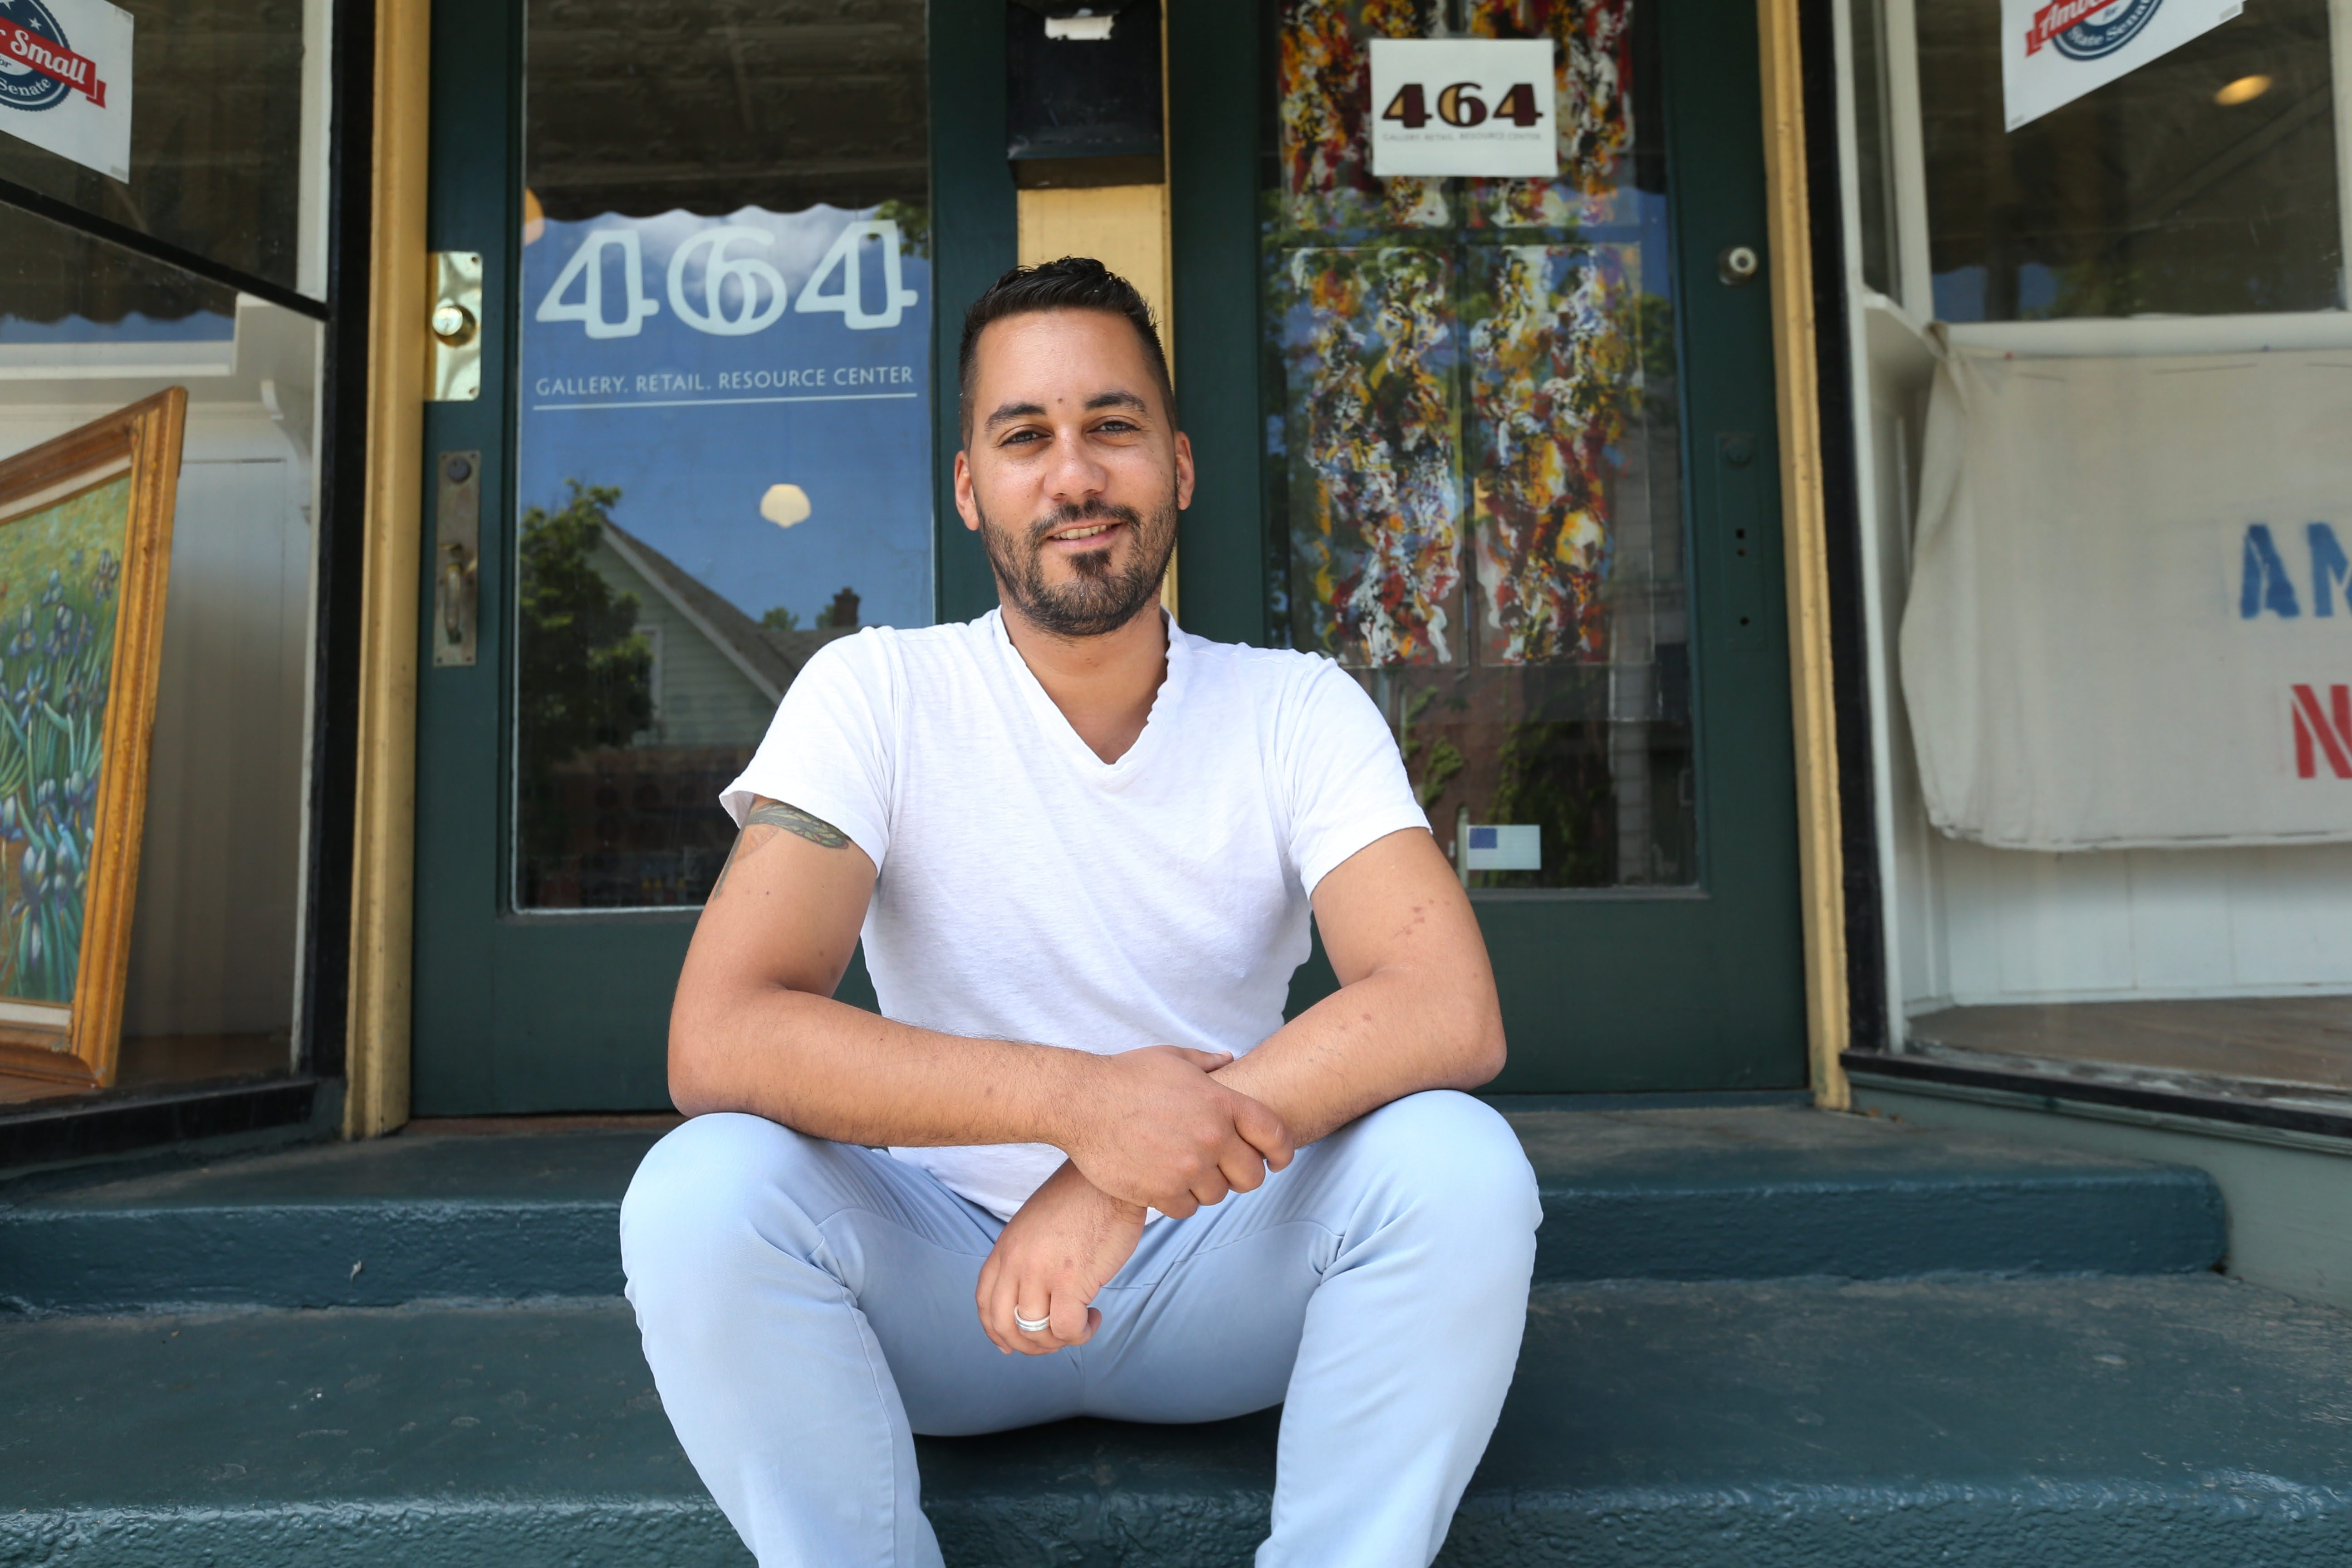 Marcus L. Wise, owner of 464 Gallery, helped anchor Black Rock's revitalization and launch a new generation of Buffalo artists. Wise is moving to Milwaukee.